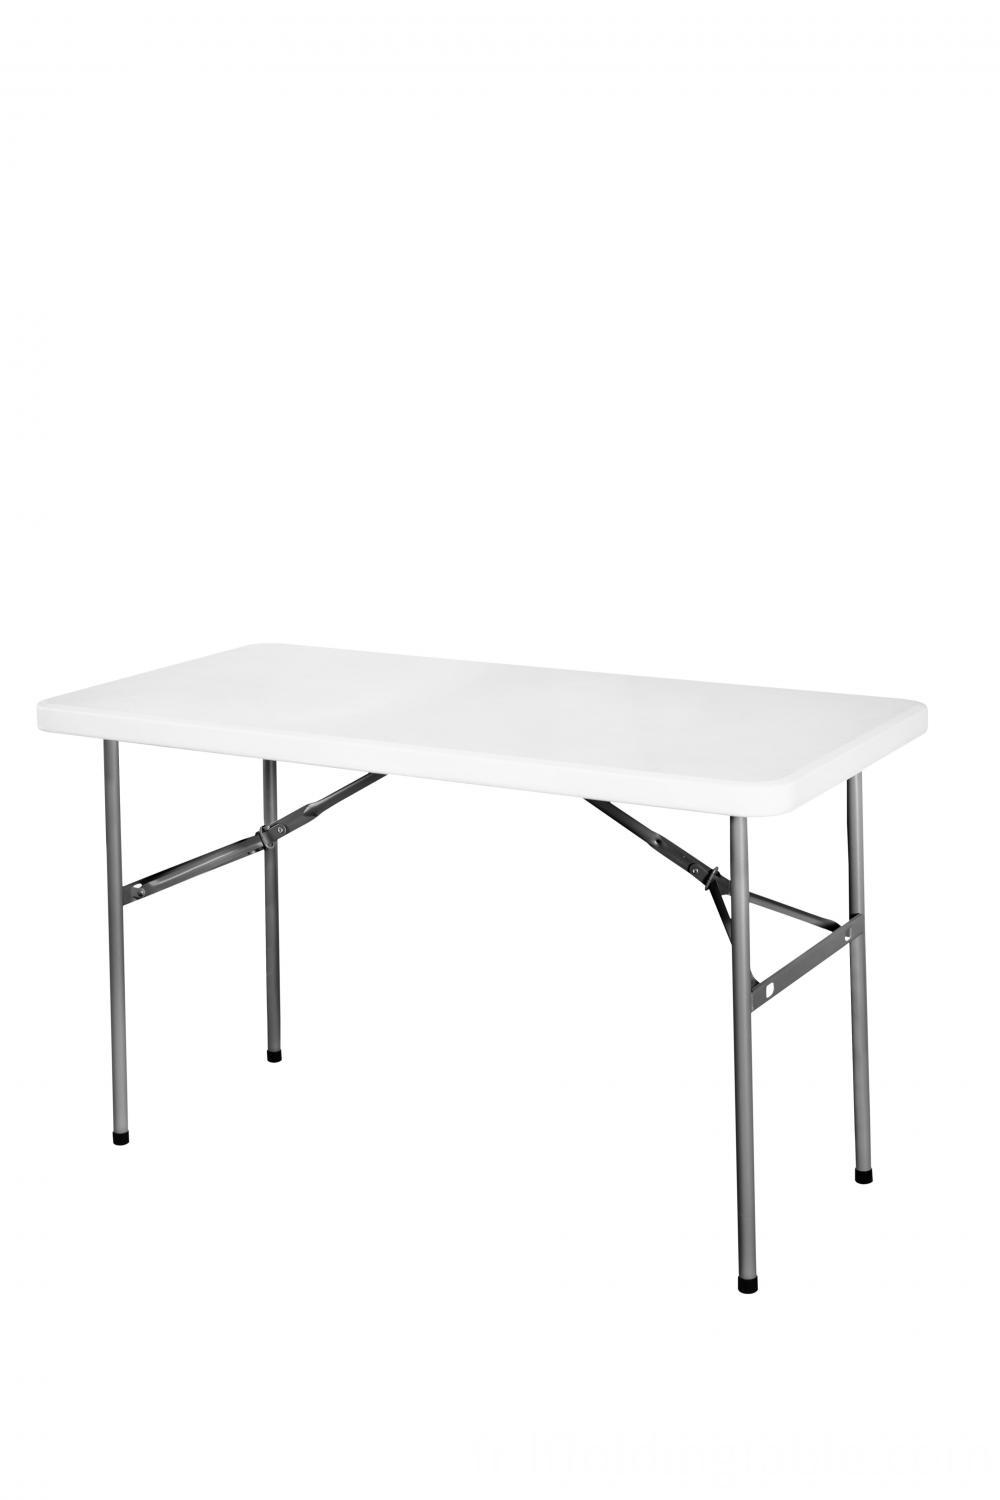 HDPE Folding Rectangular Table